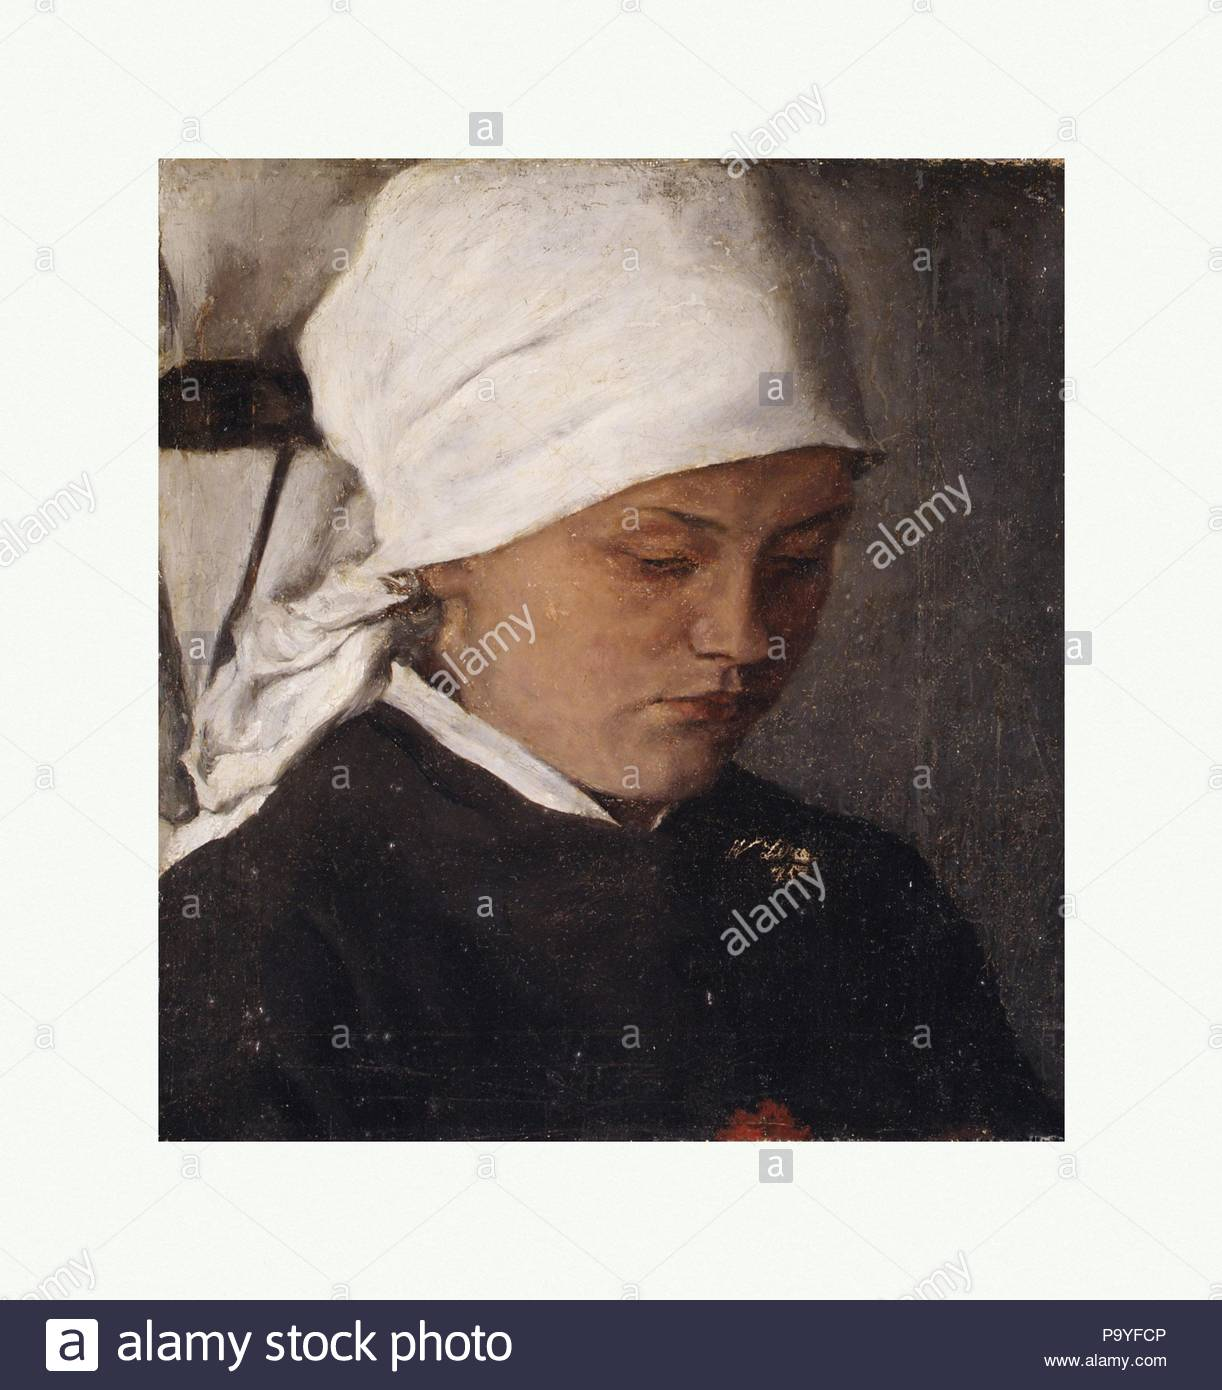 Peasant Girl with a White Headcloth, 1885, Oil on canvas, 9 7/8 x 9 1/8 in. (25.1 x 23.2 cm), Paintings, Wilhelm Leibl (German, Cologne 1844–1900 Würzburg). - Stock Image